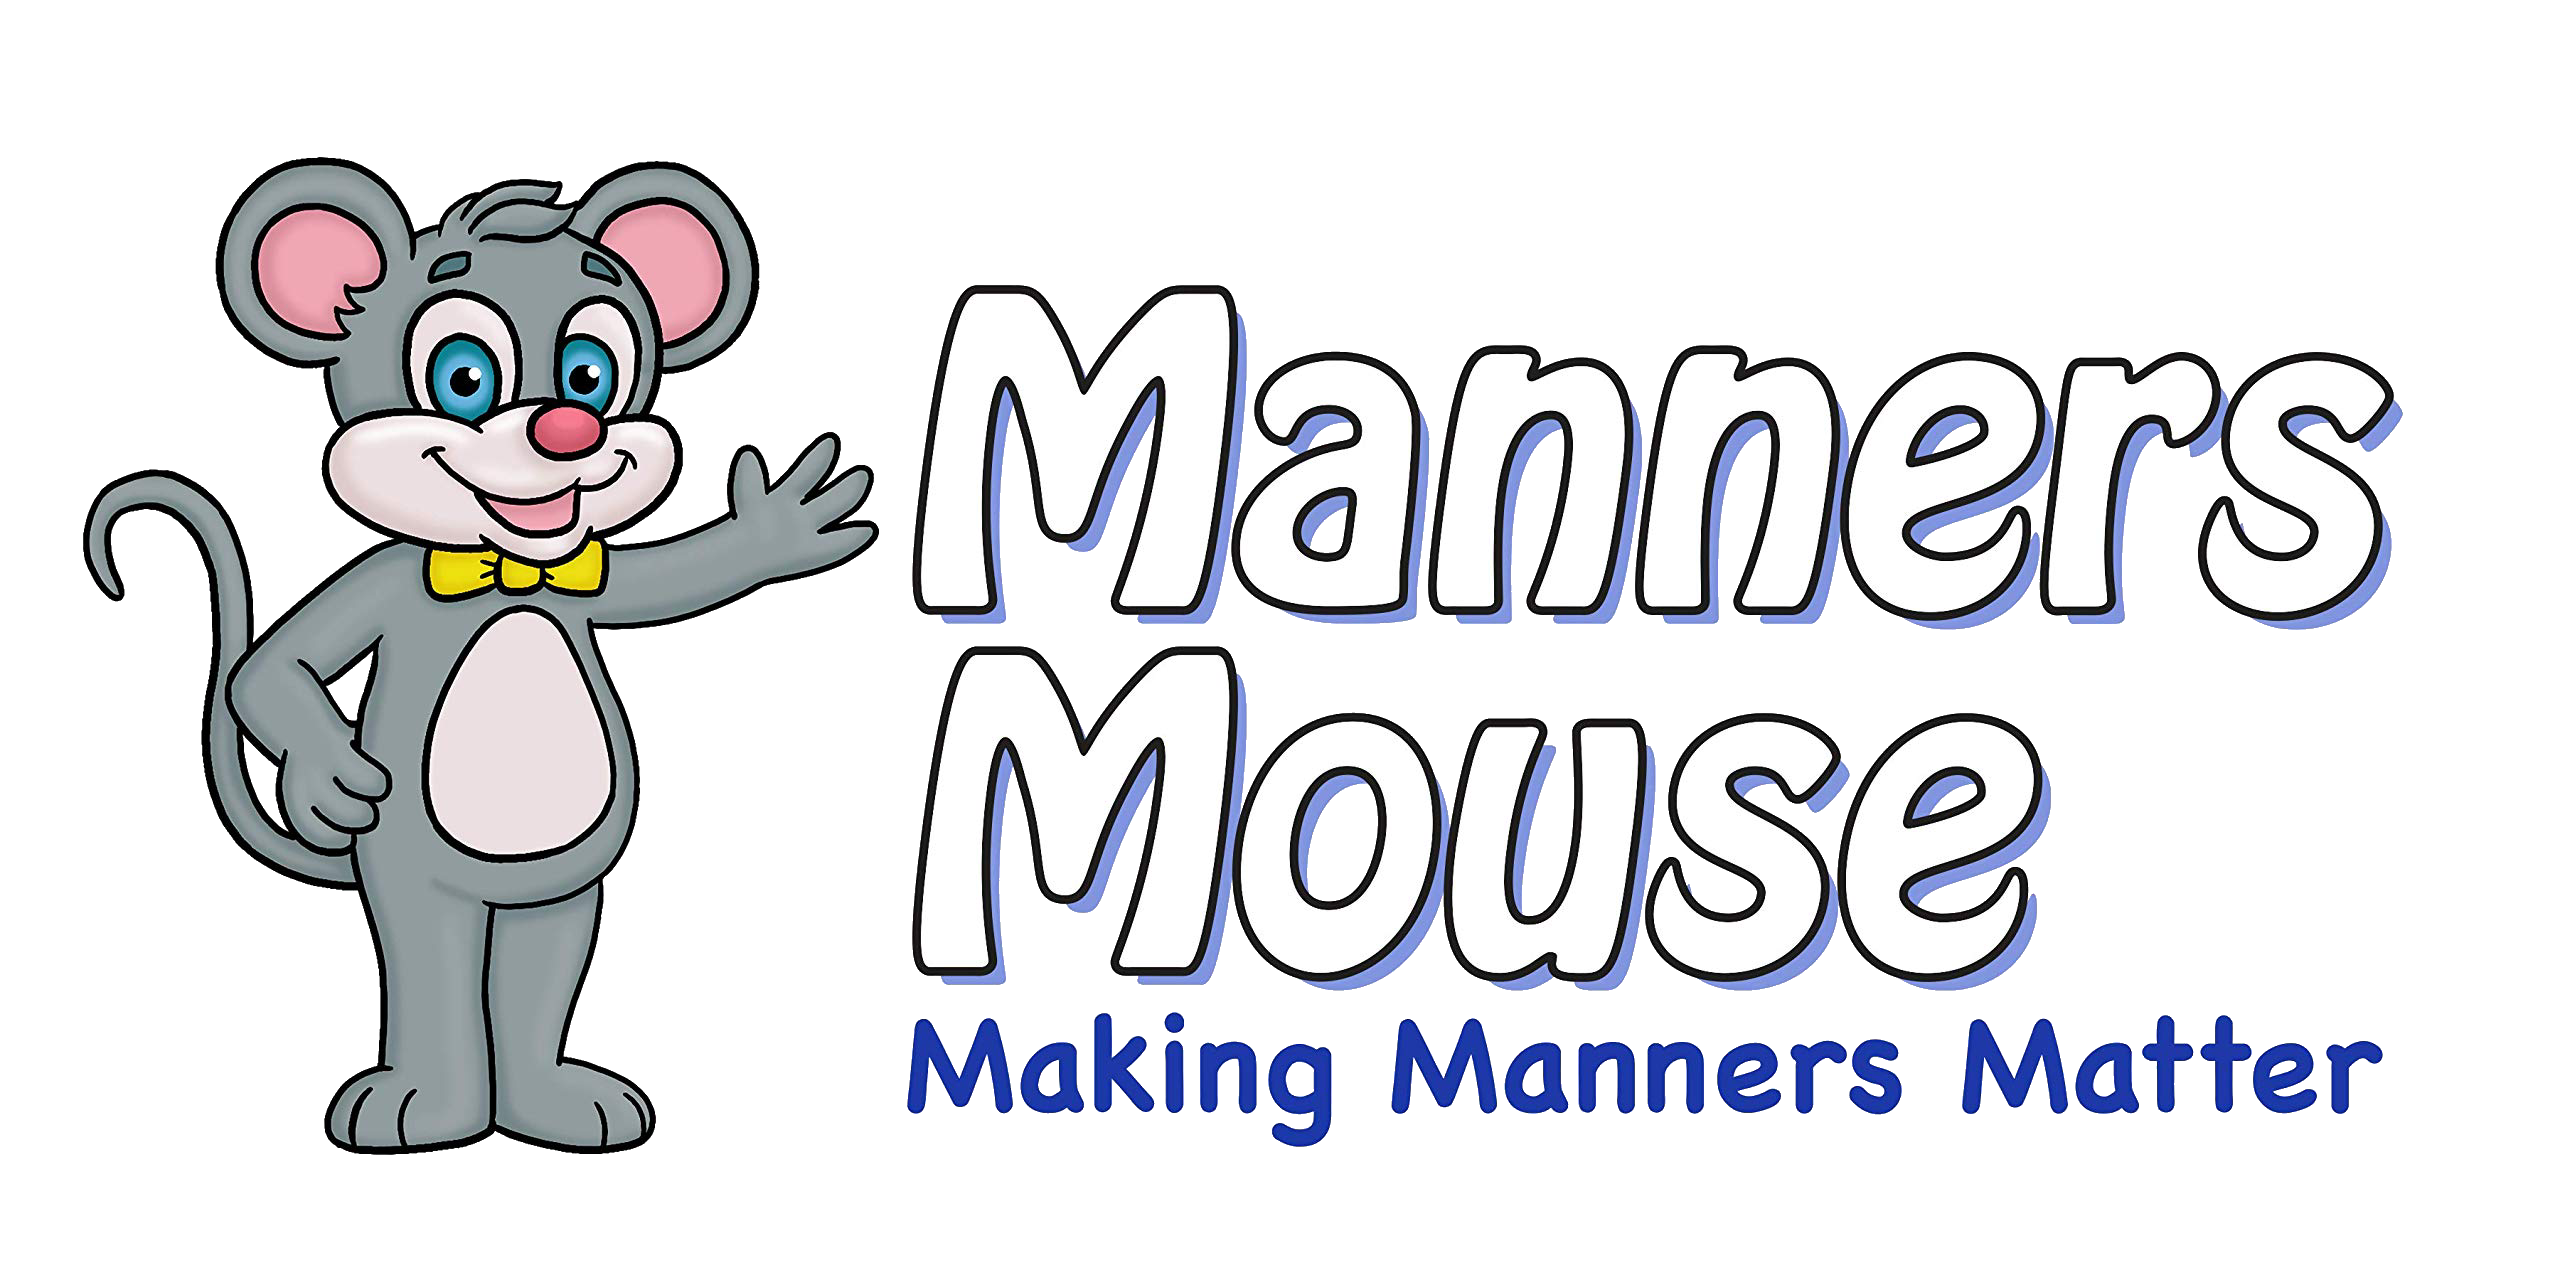 Manners Mouse